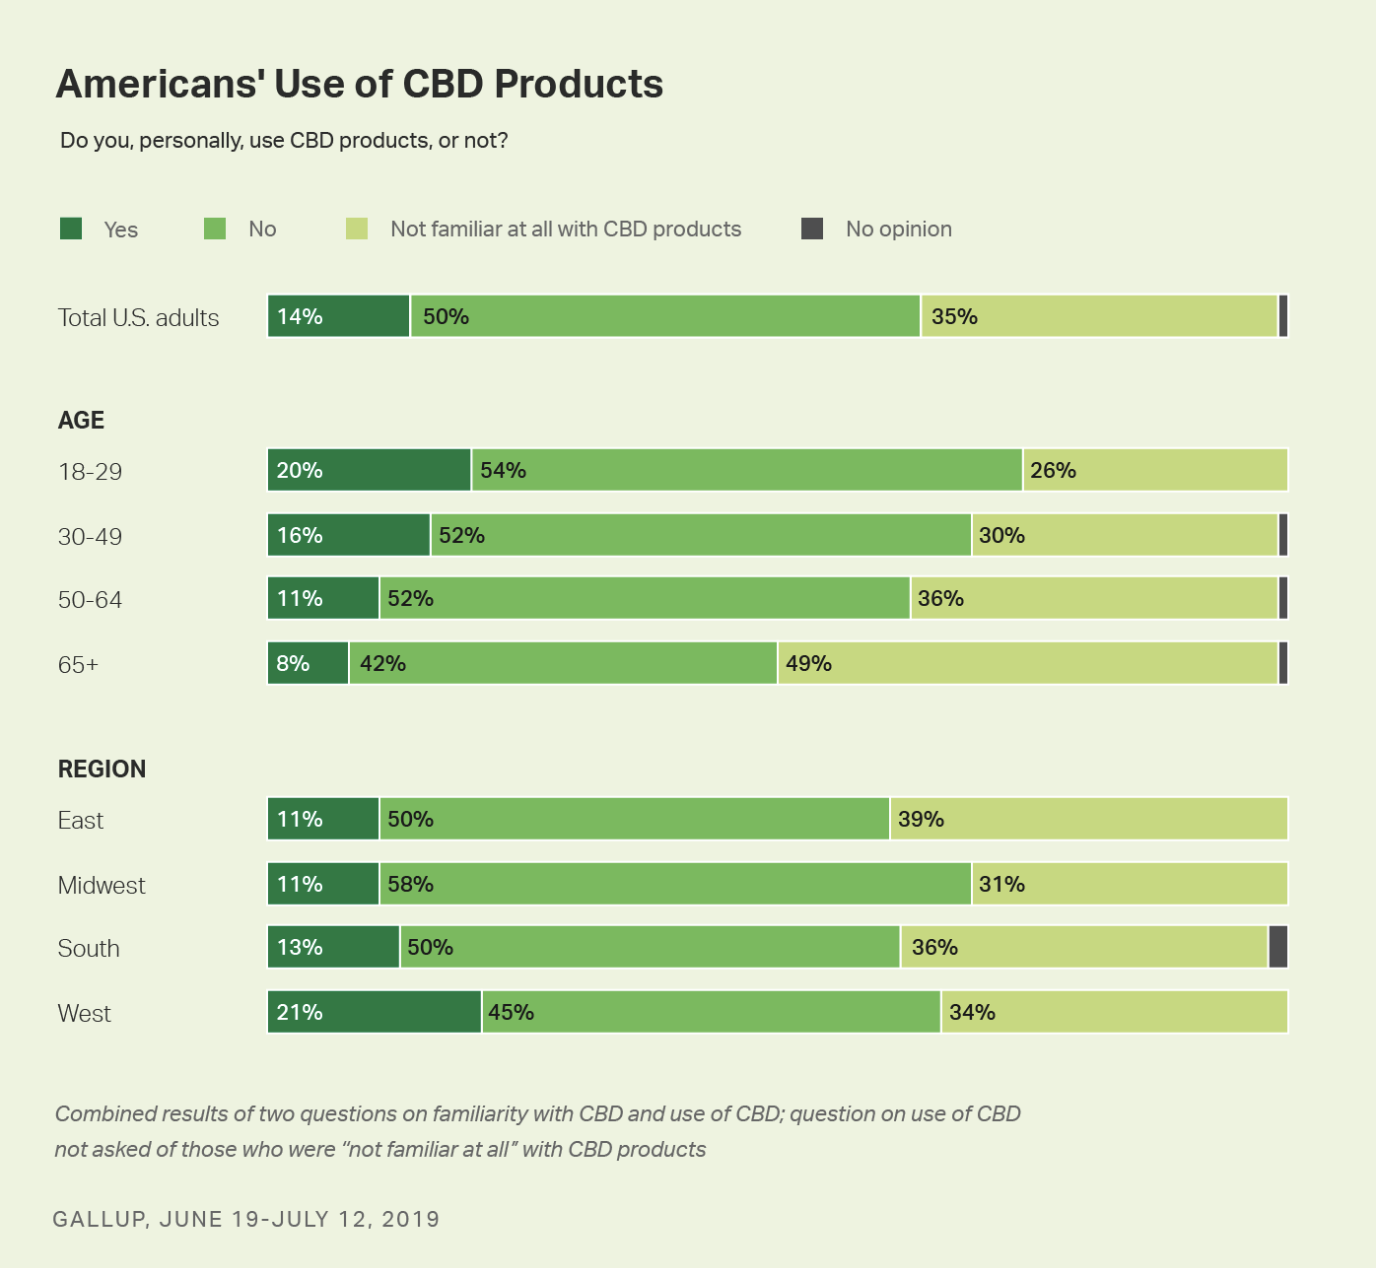 Americans' use of CBD products in 2020